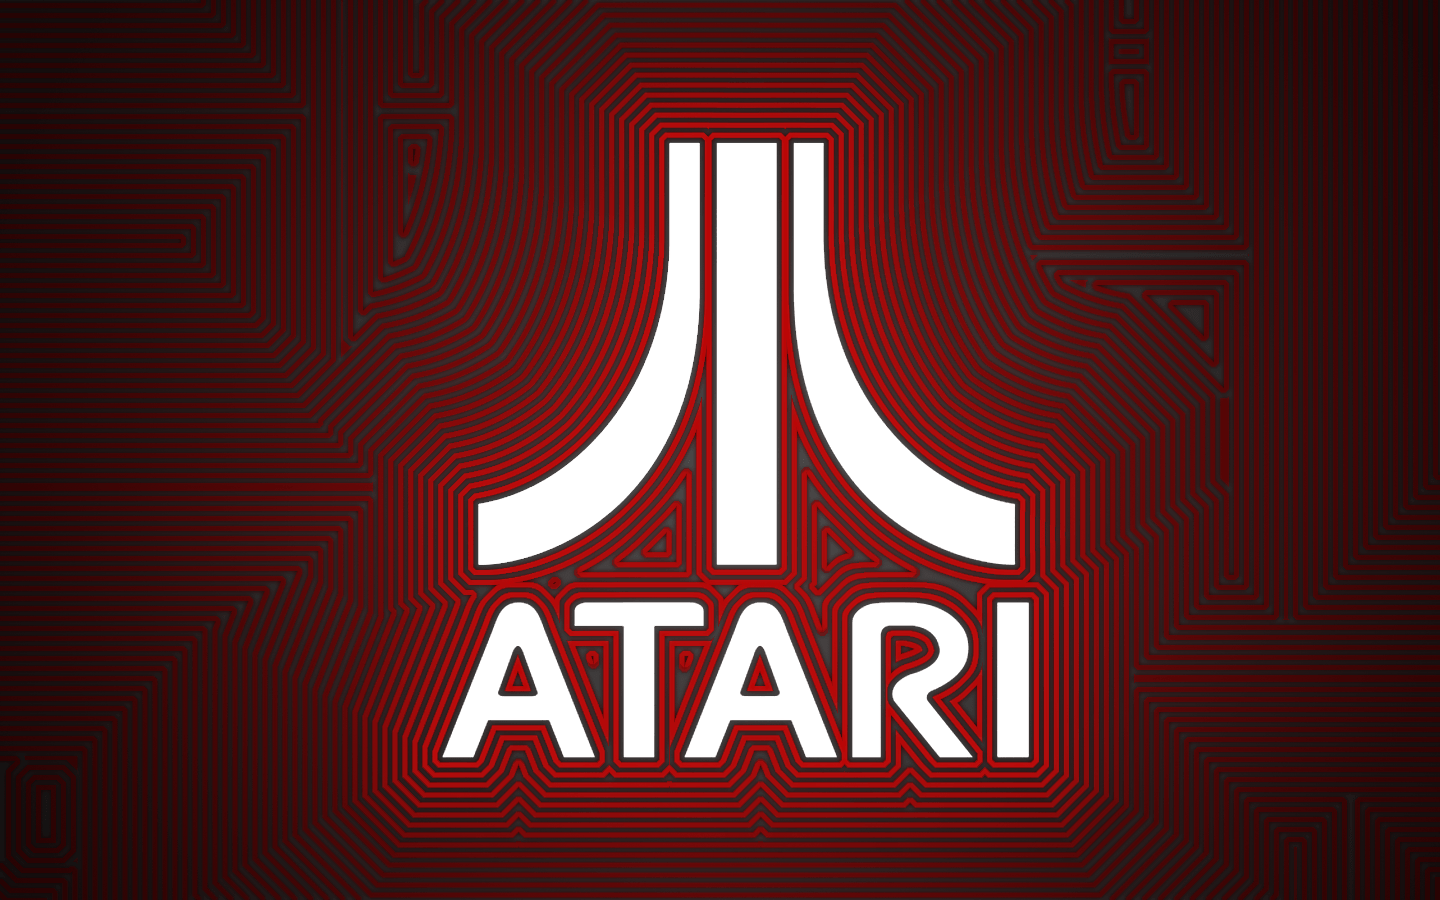 Update: Atari Tribute Wallpaper | Andrew M. Pace